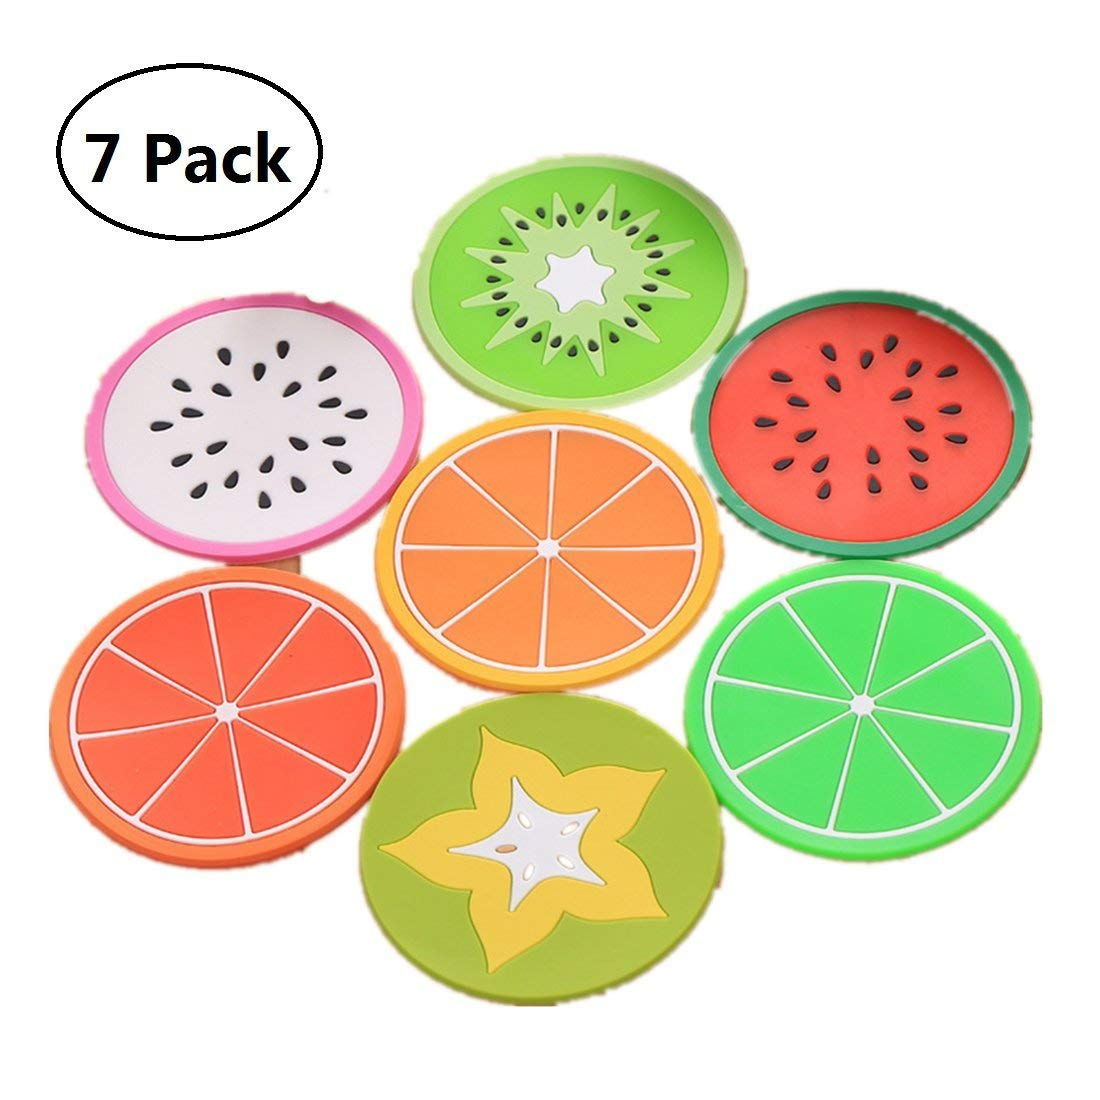 Tsuen Non Slip Fruit Coasters for Drinks, 7 Pieces Anti Slip Silicone Fruit Drinks Coffee Coasters Drink Cups Mat Drink Placement, Pack of 7